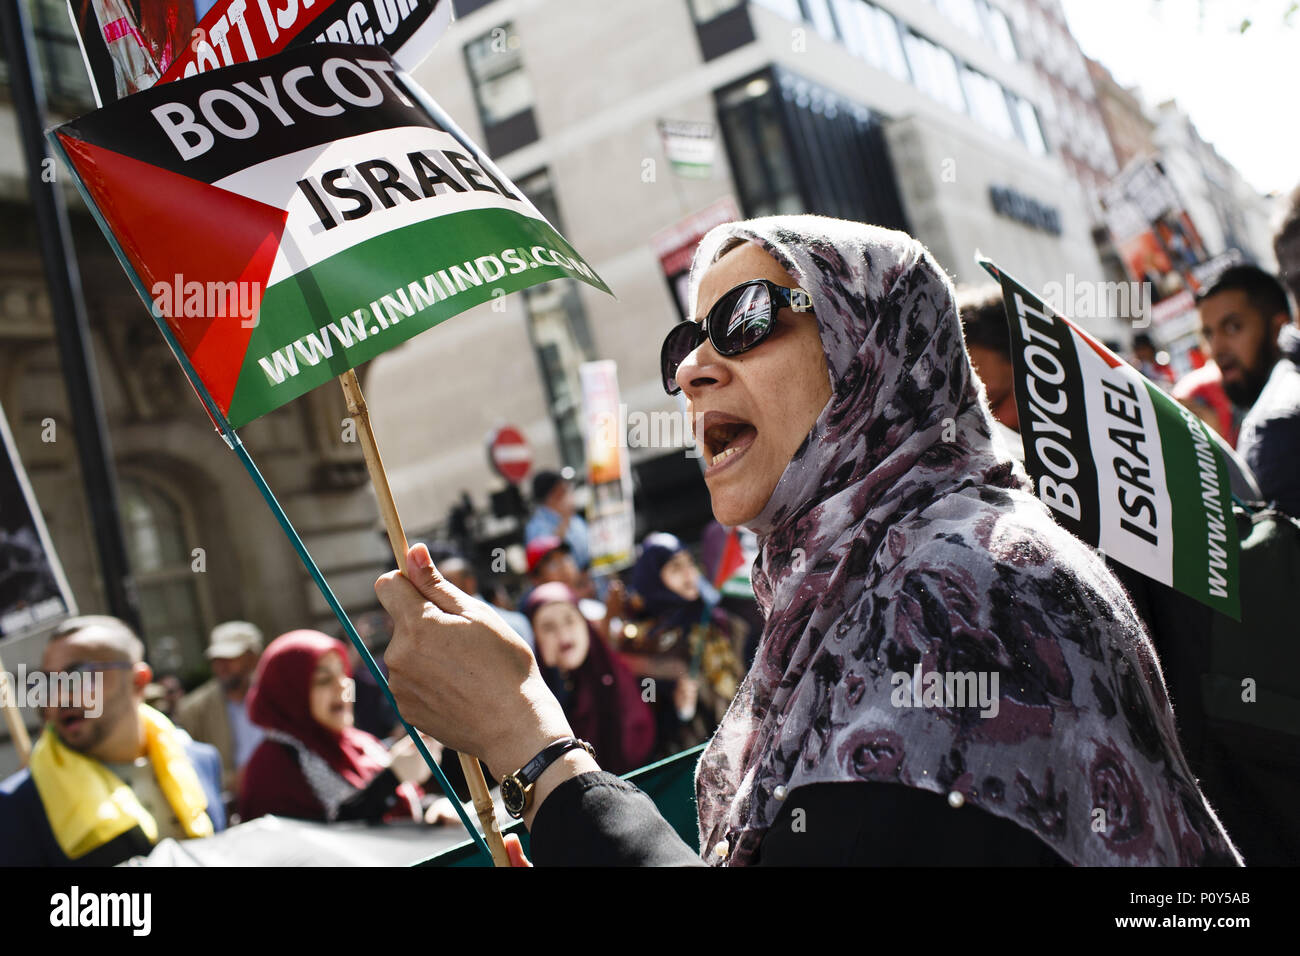 London, UK. 10th June, 2018. A woman holds a 'Boycott Israel' flag during the annual pro-Palestine/anti-Israel Al Quds Day demonstration in central London. The demonstration is notably controversial in the city for the flying of Hizbullah flags that typically takes place during the course of it. Credit: David Cliff/SOPA Images/ZUMA Wire/Alamy Live News - Stock Image